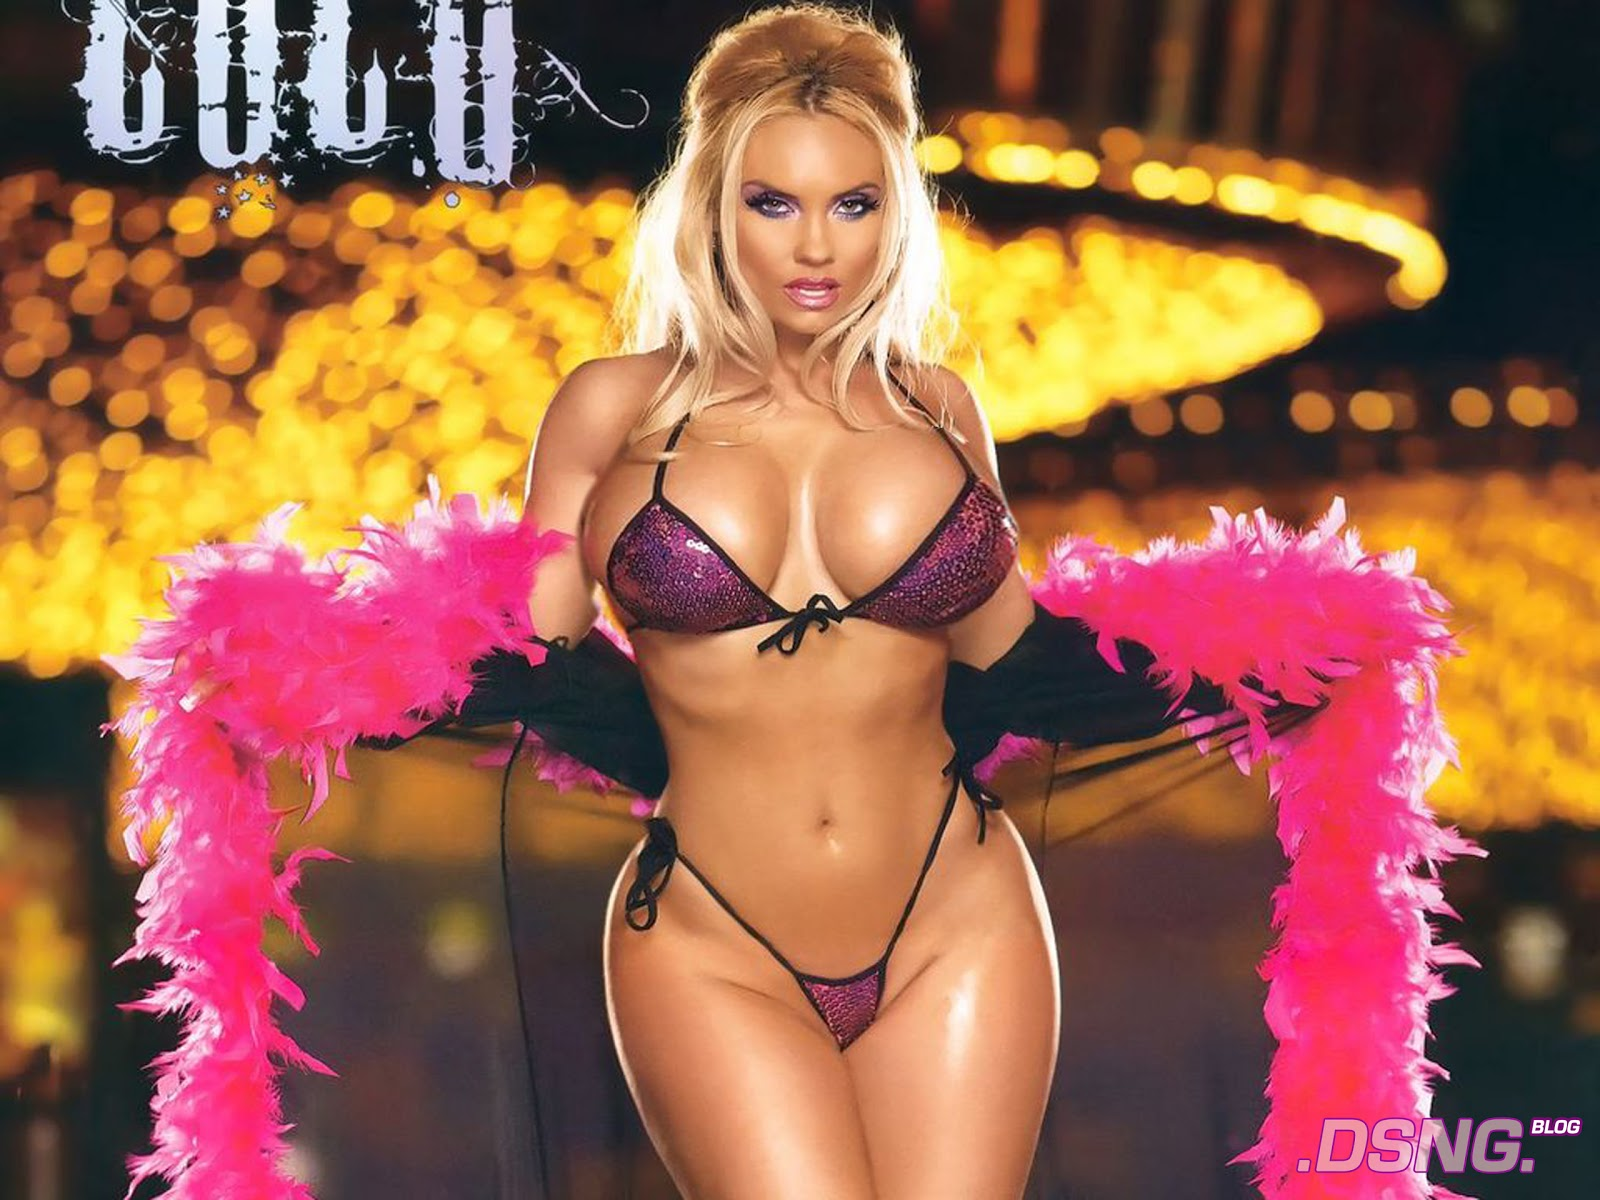 Dsngs Sci Fi Megaverse Coco Austin - Classic Photo Gallery-9047